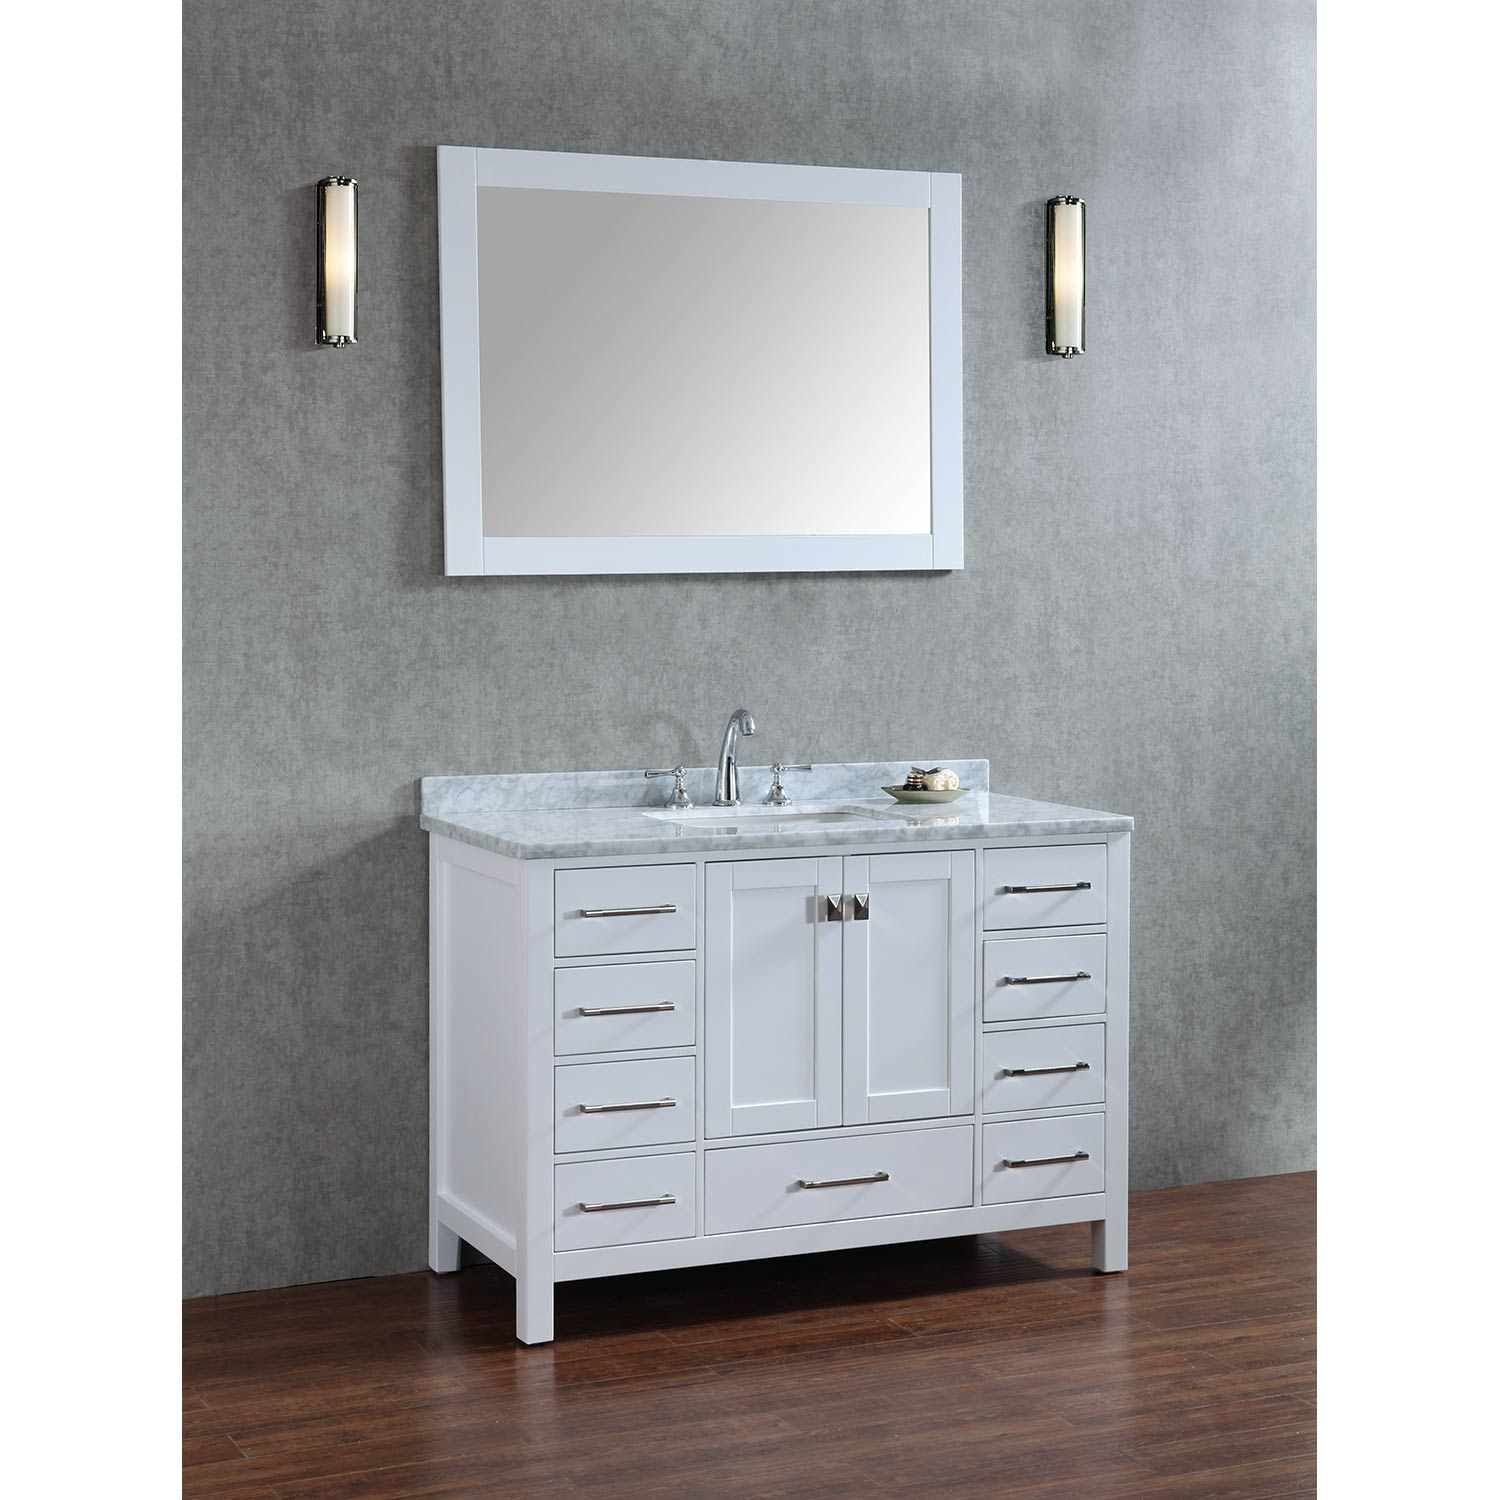 48 inch solid wood bathroom vanity buy vincent 48 inch for Bathroom 48 inch vanity